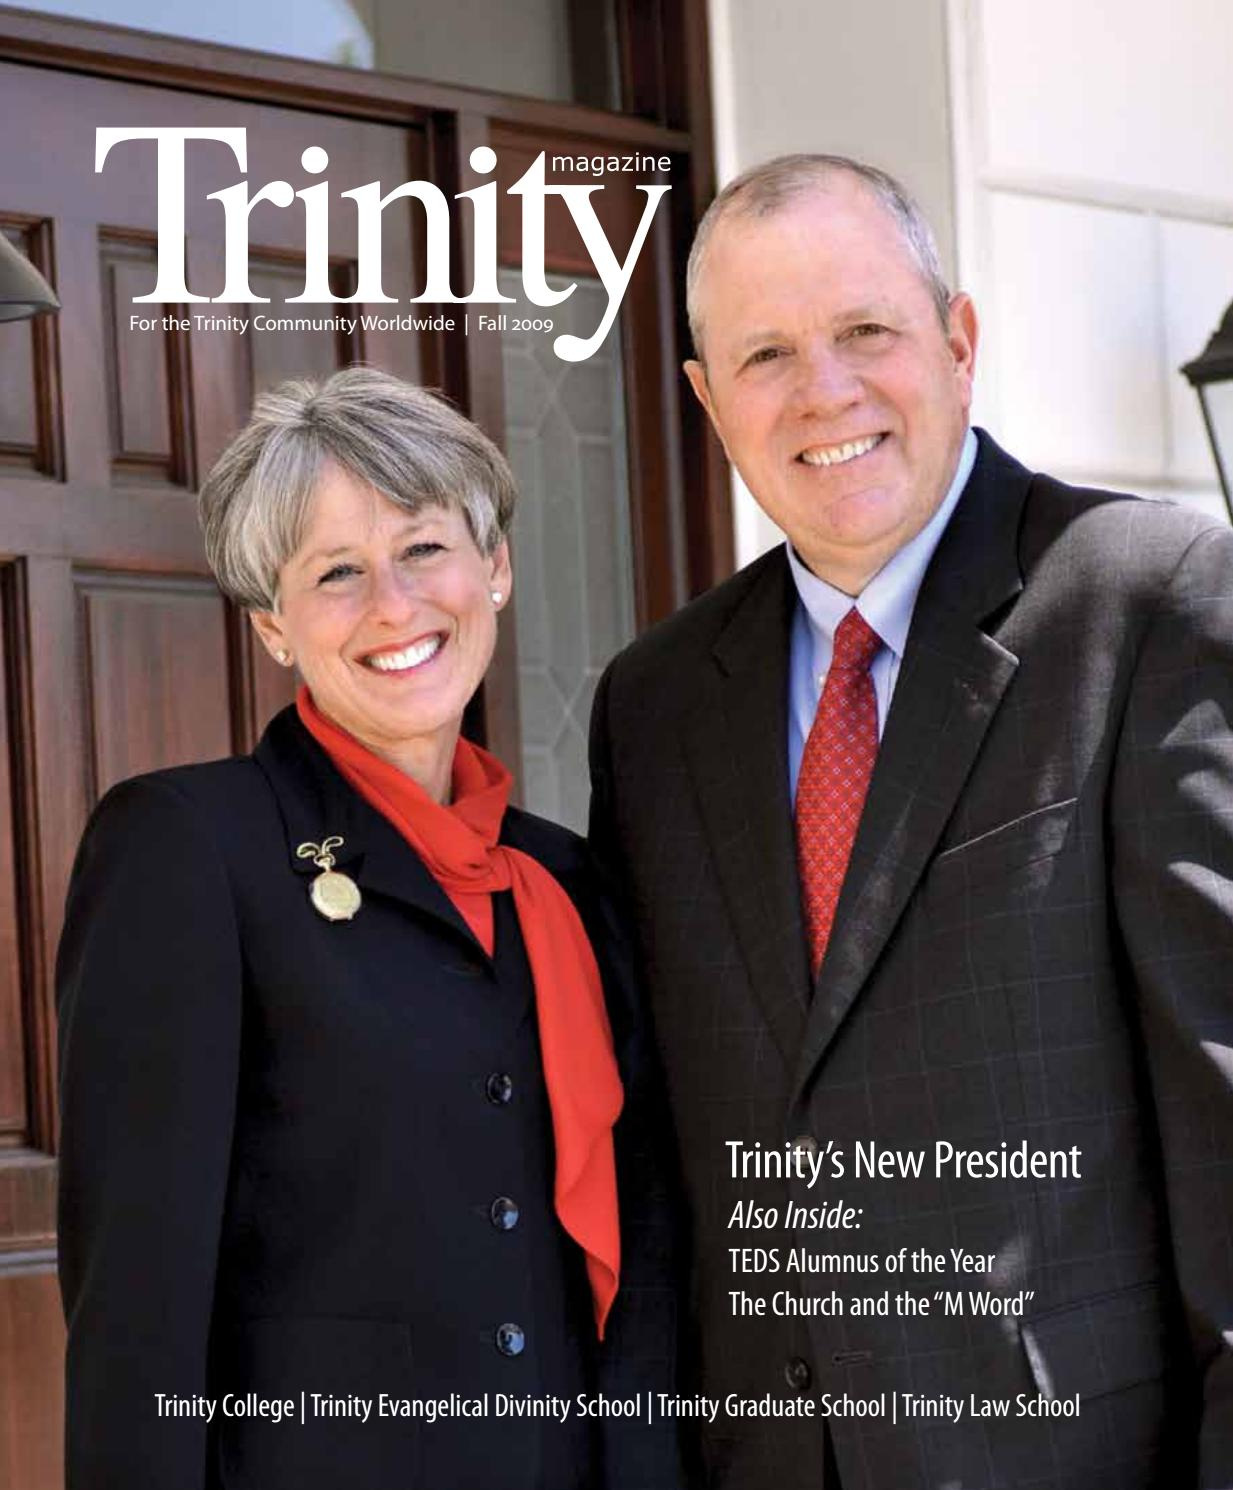 Trinity Magazine (fall '09) by Trinity International